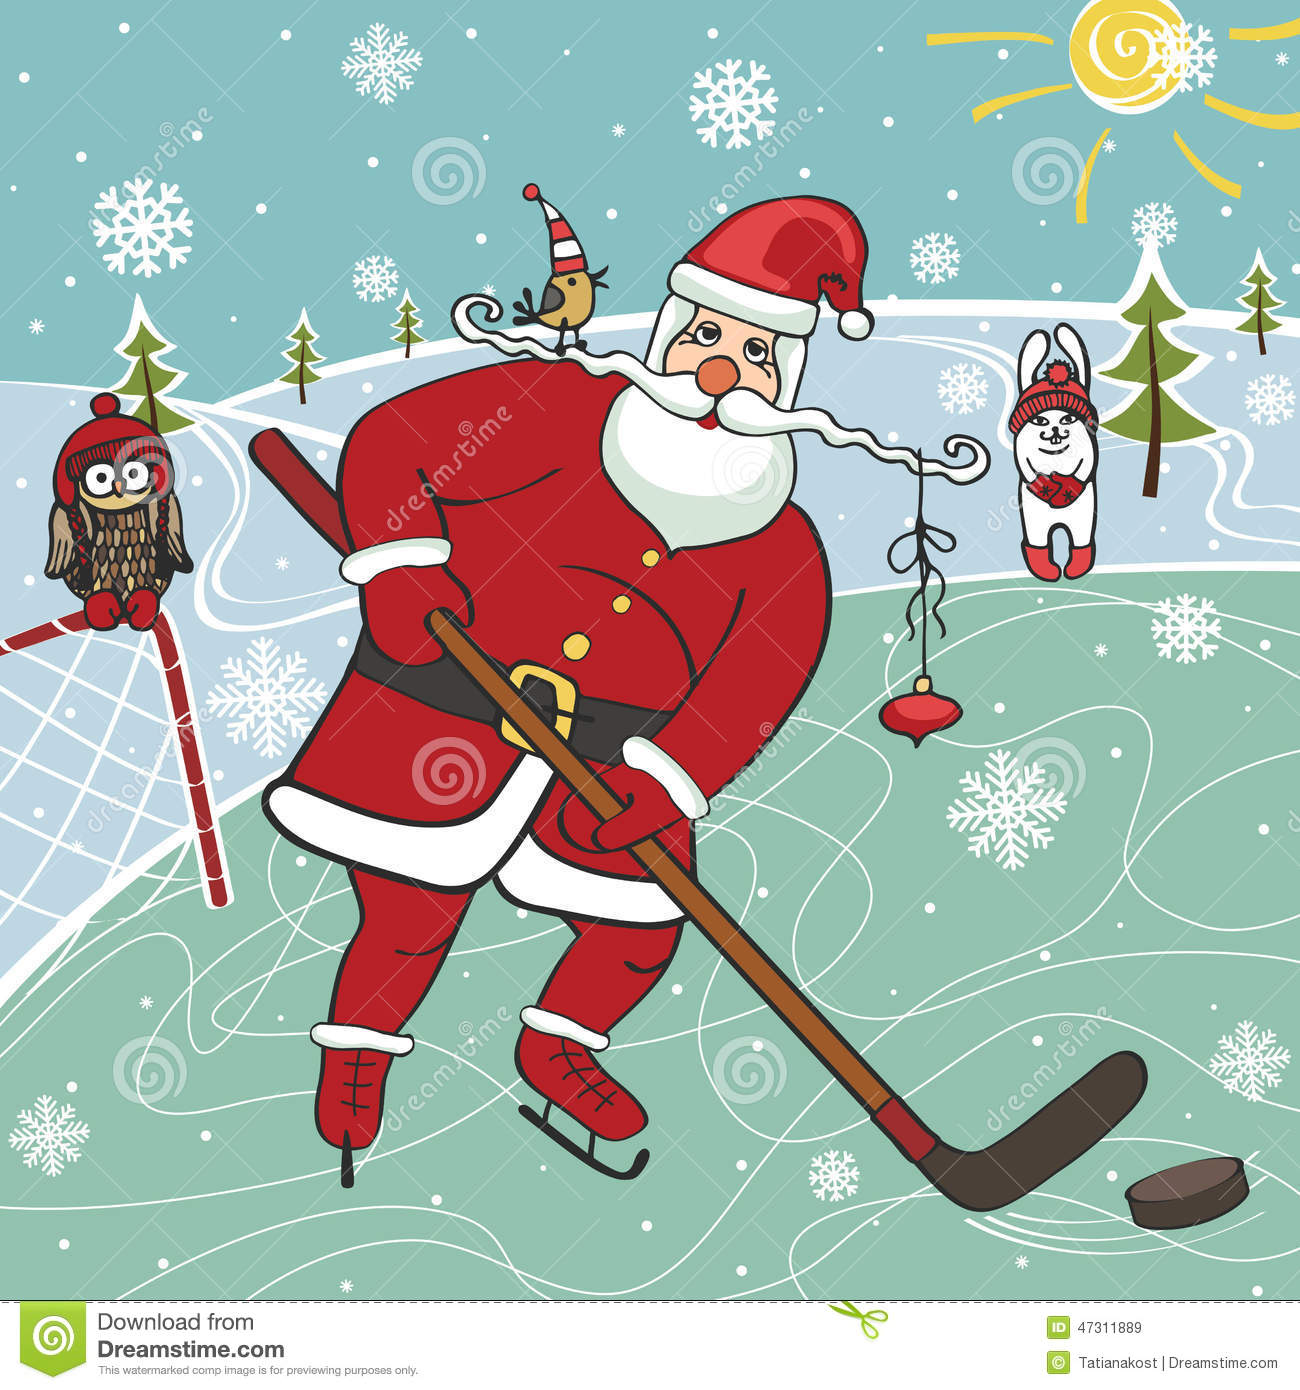 Santa Playing Ice HockeyHumorous Illustrations Stock